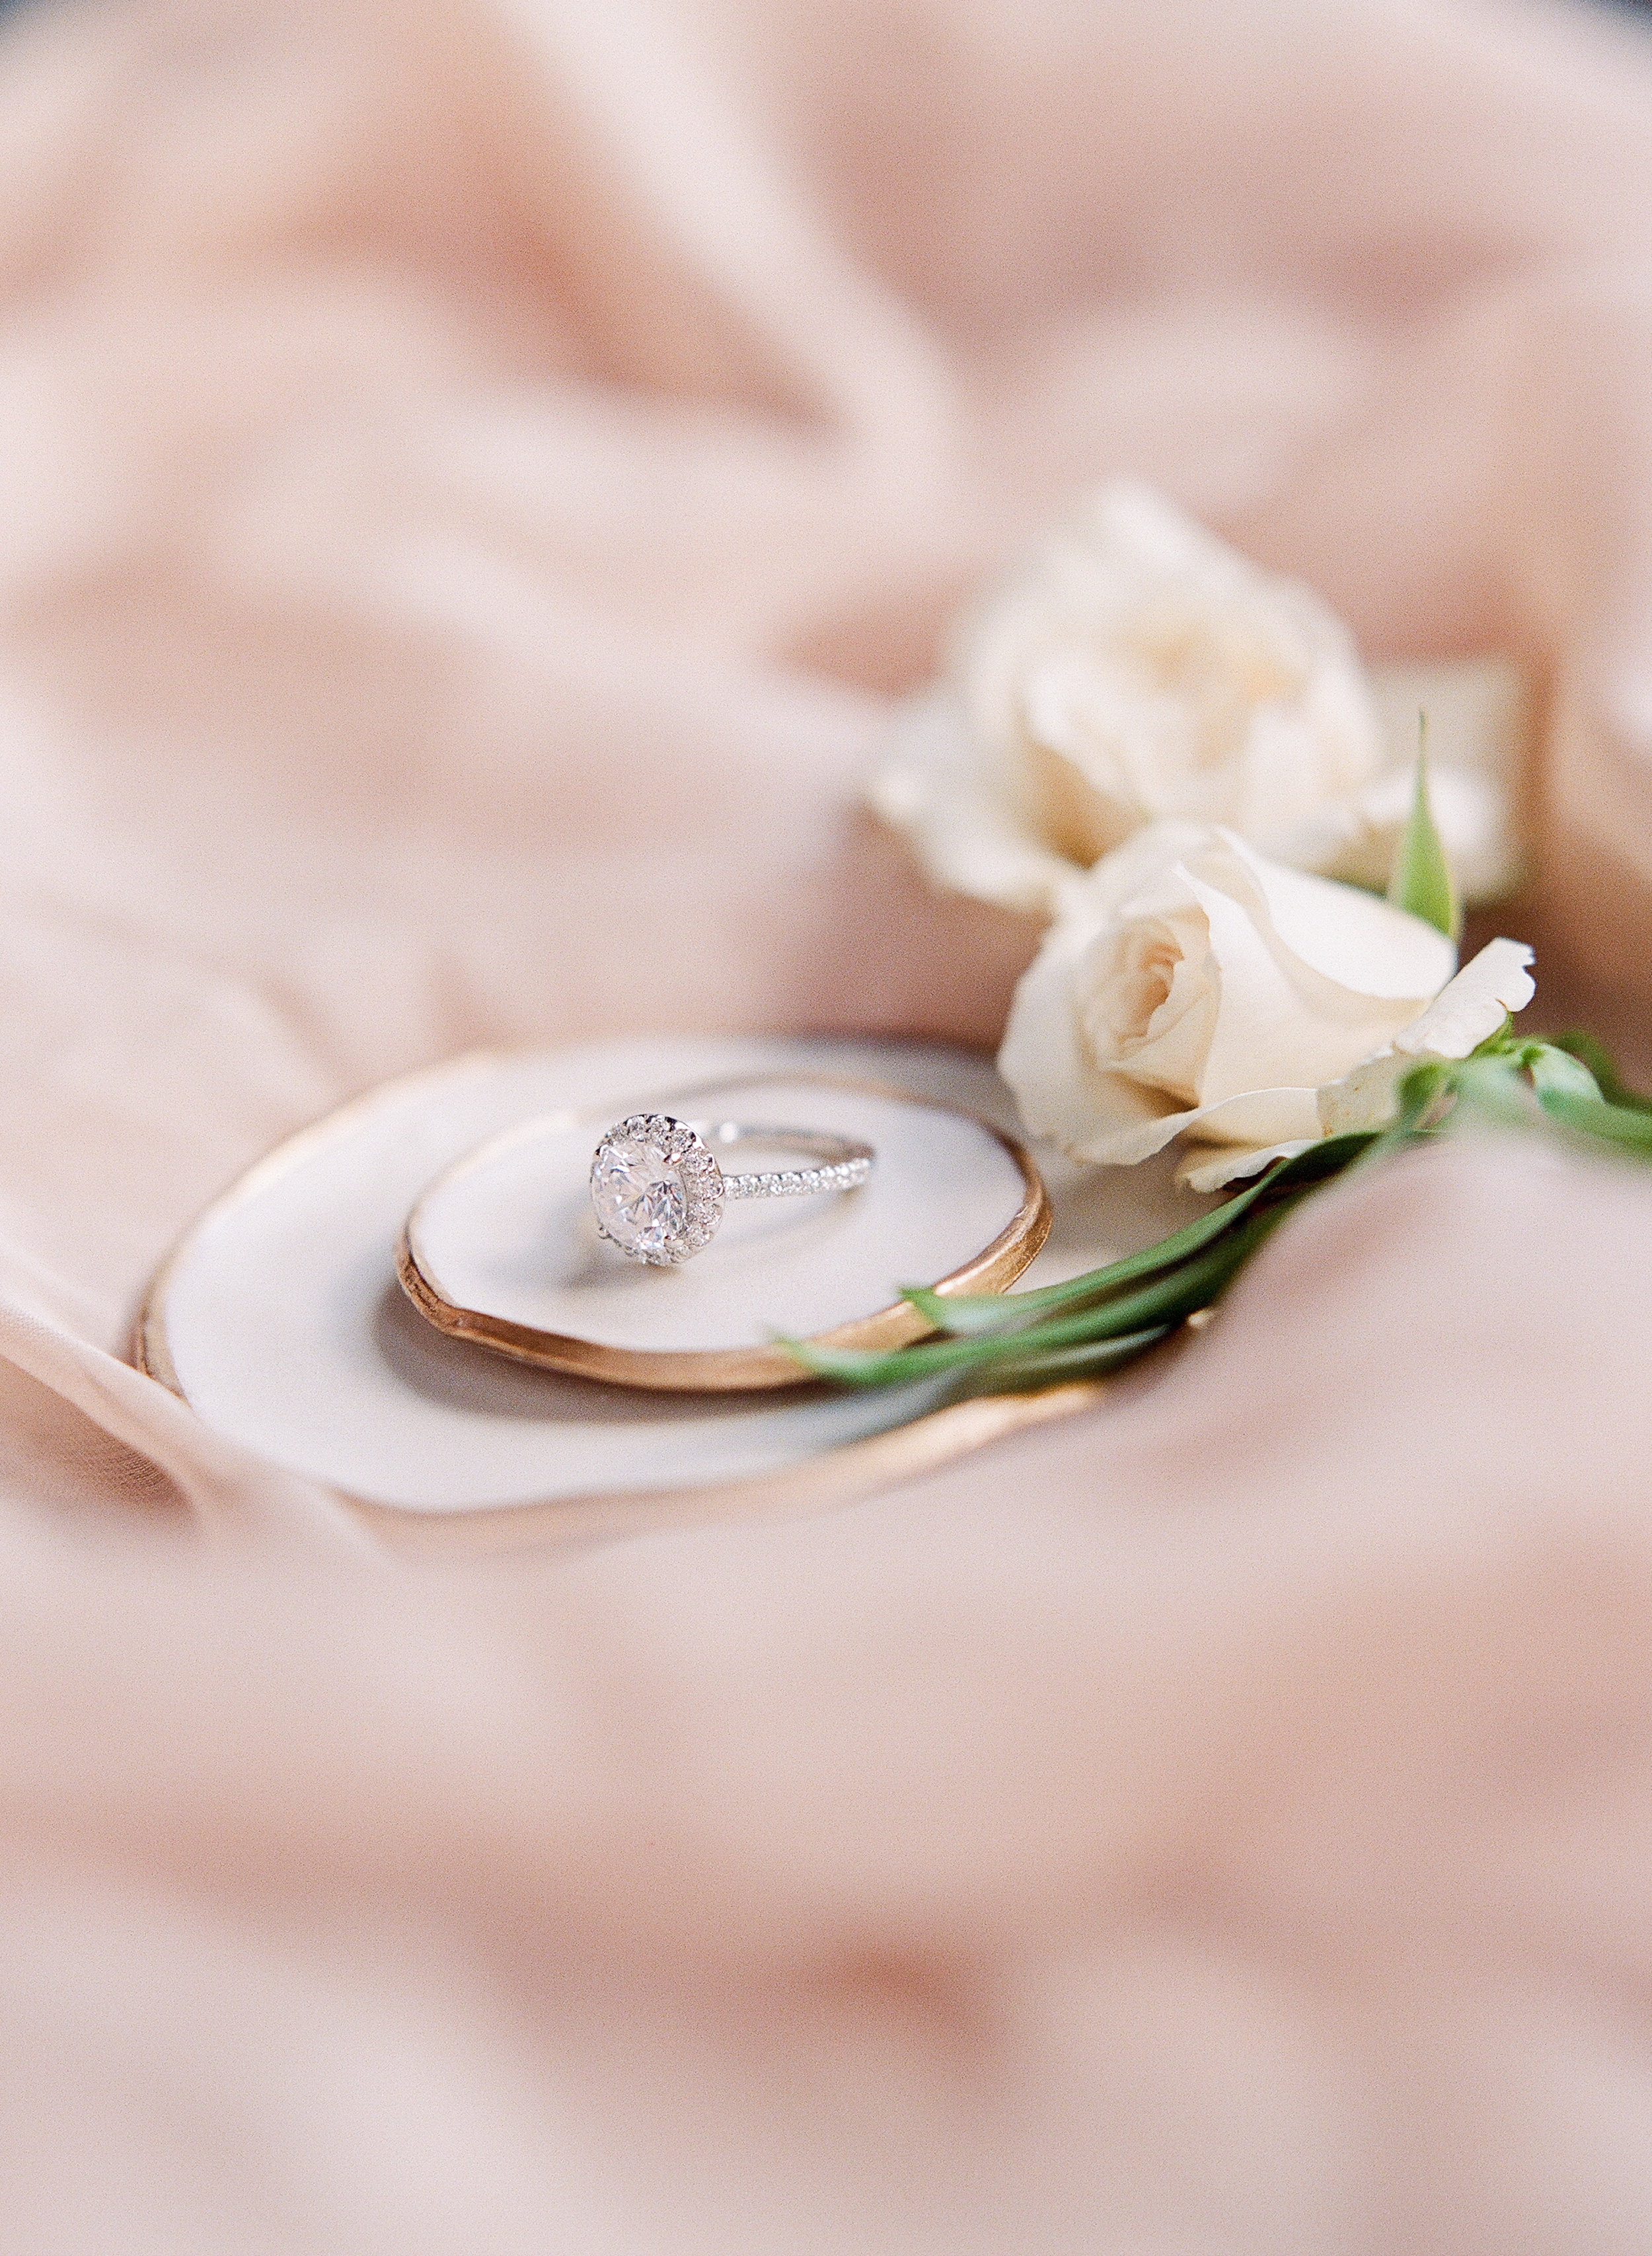 Photo by  Park Road Photography of a  Ritani  engagement ring